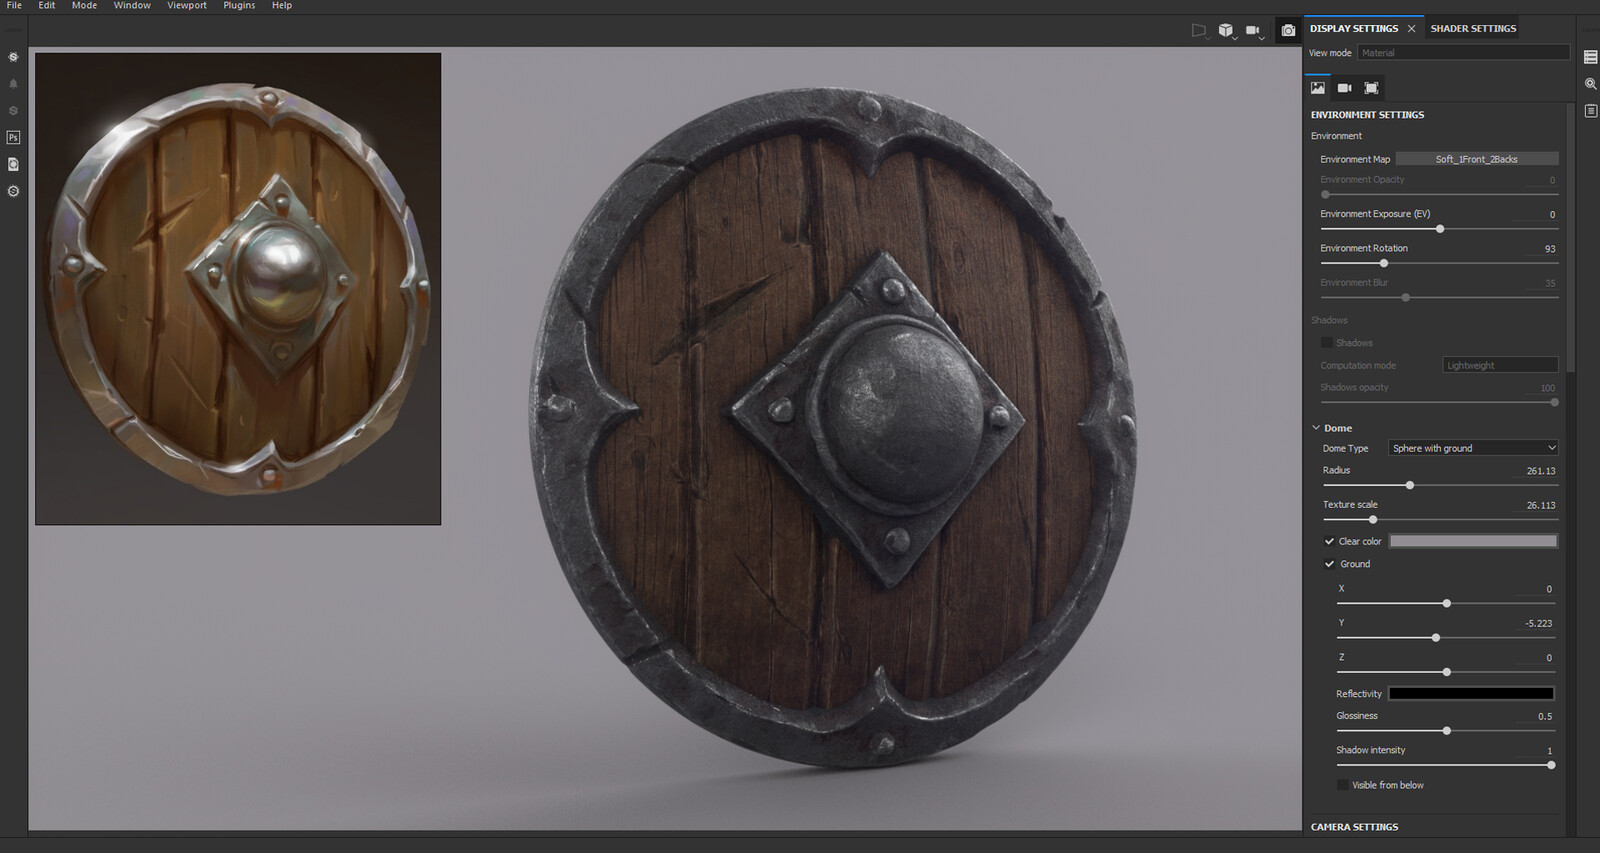 Texturing made on Substance Painter